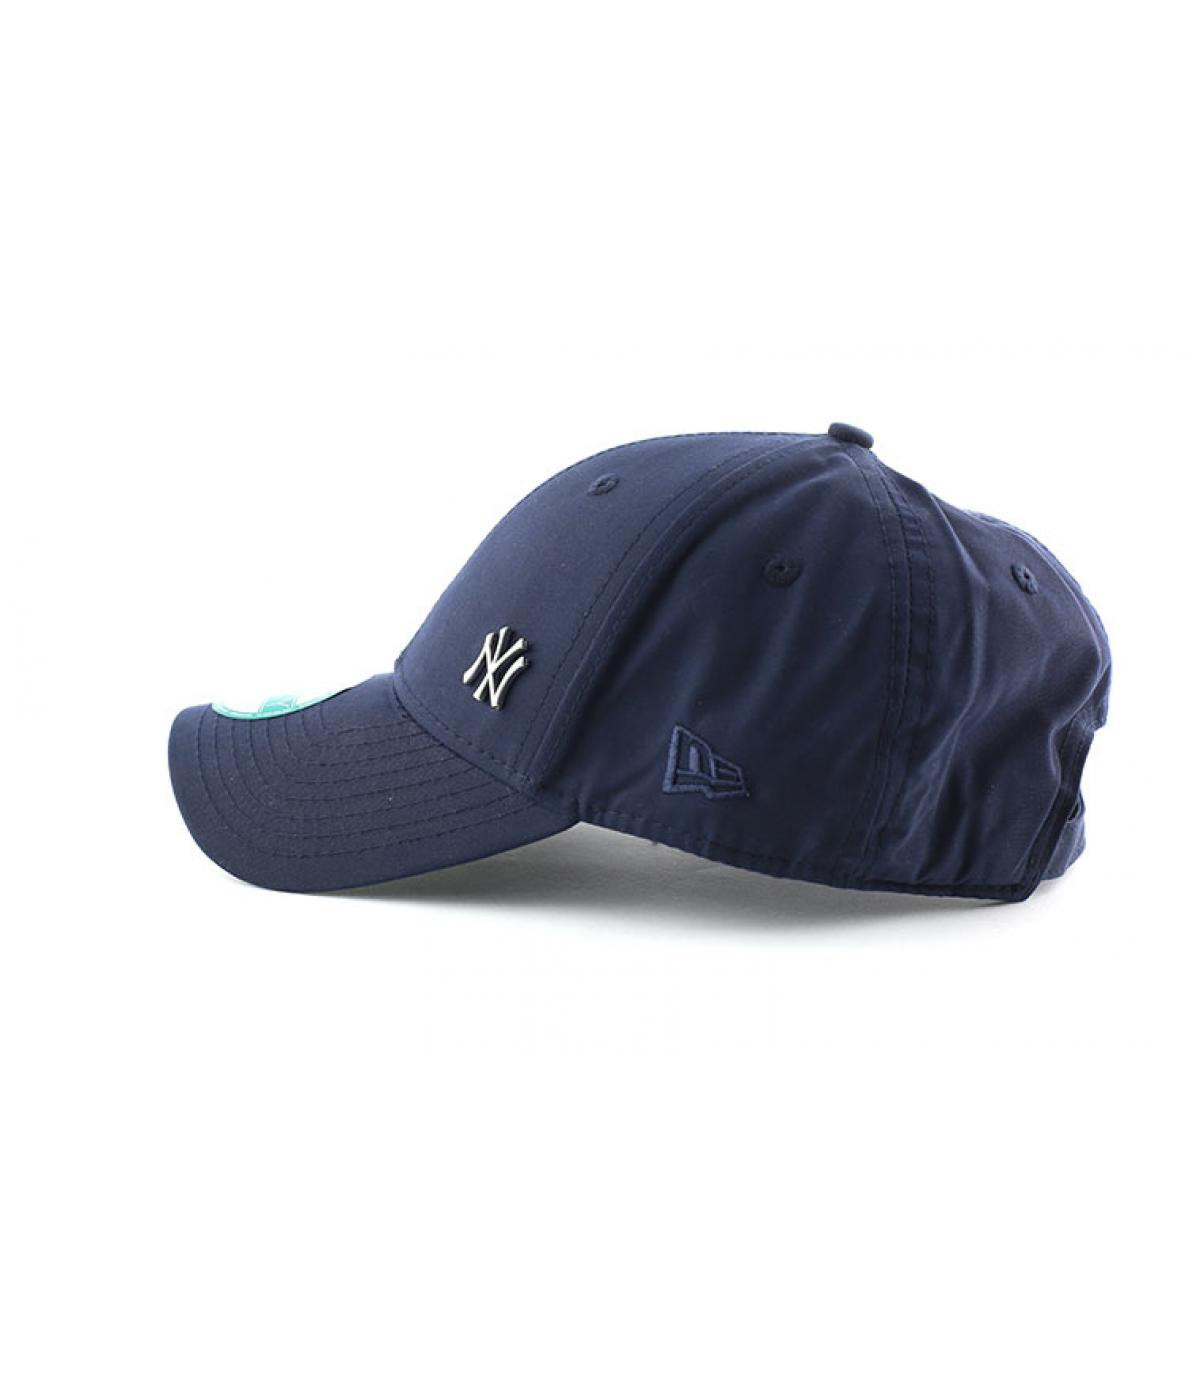 Détails Casquette NY flawless navy - image 4